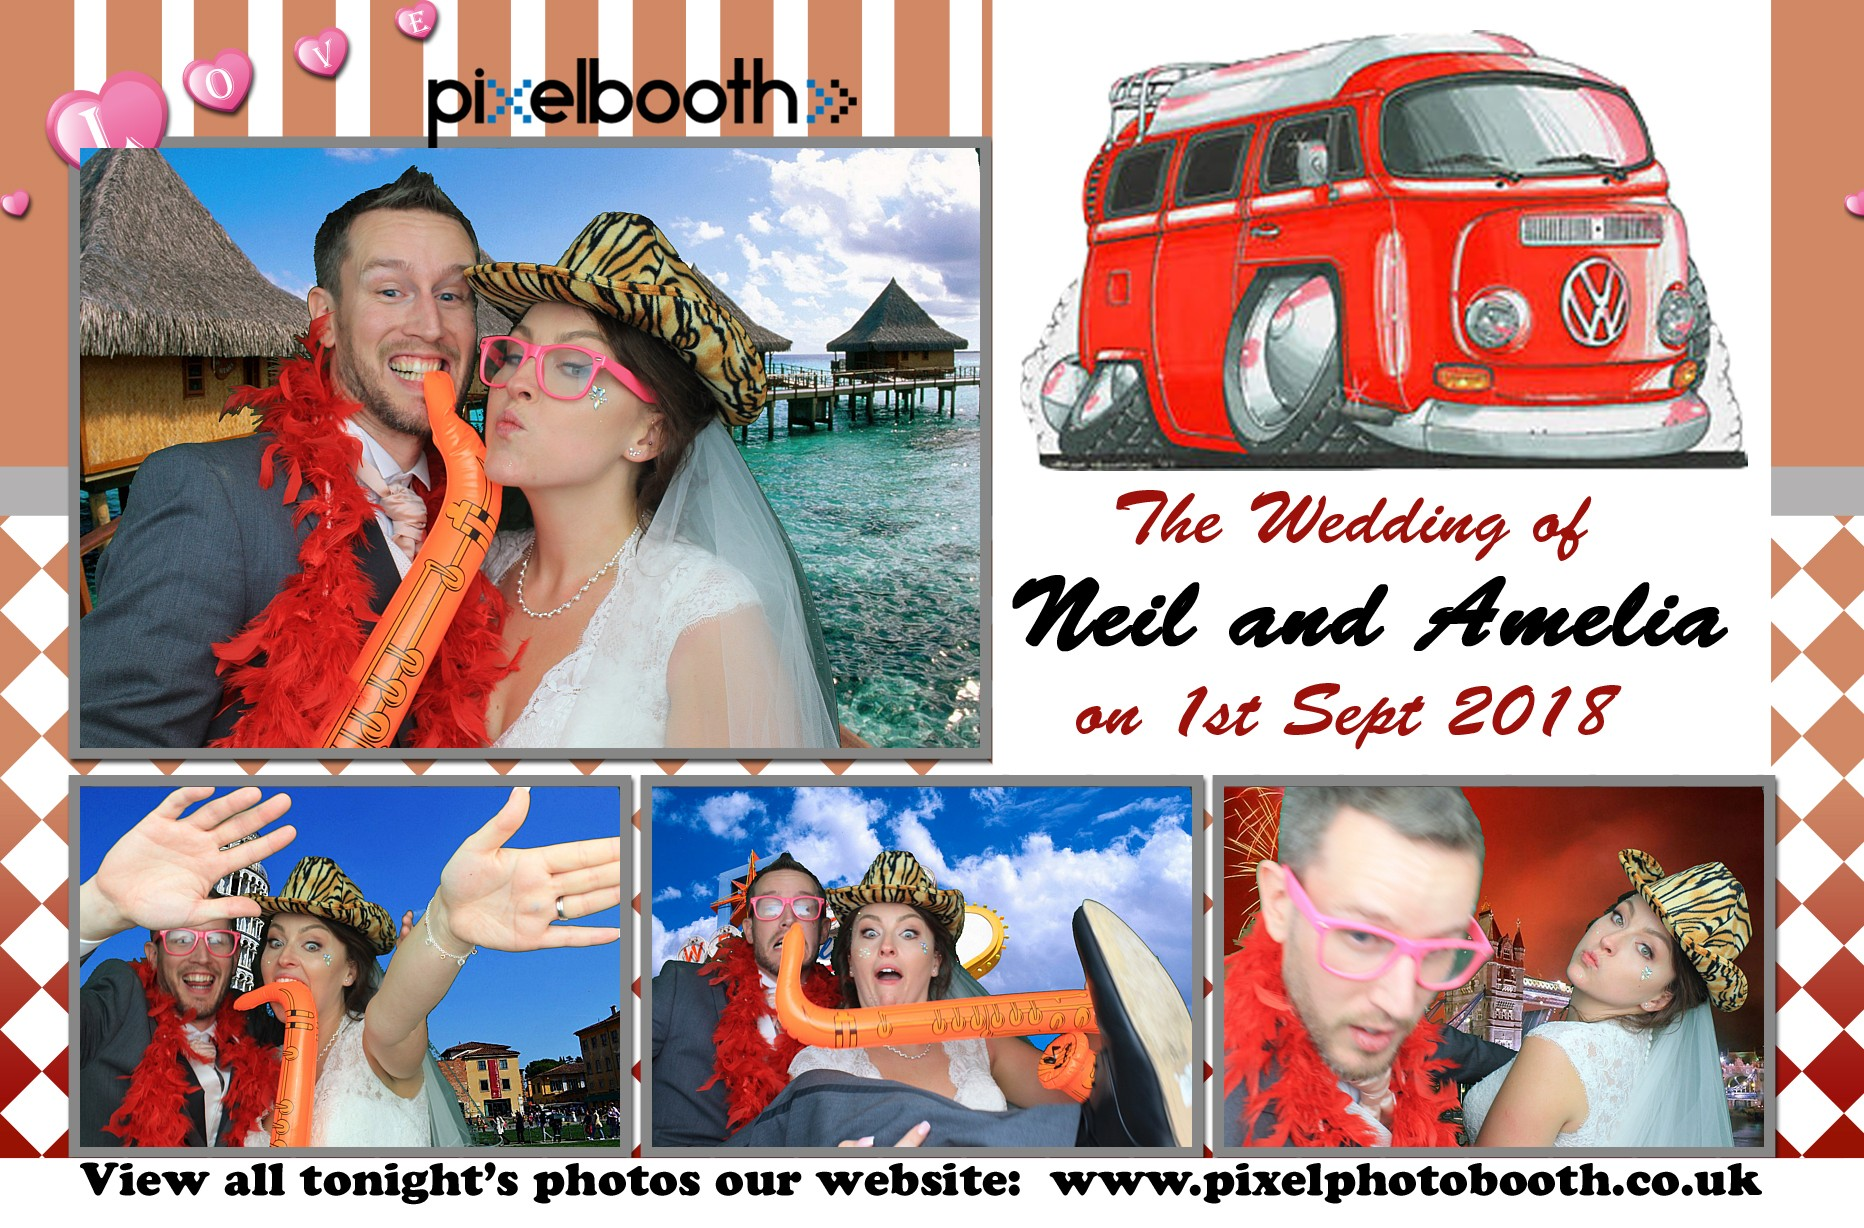 1st Sept: Amelia and Neil's Wedding at The Grosvenor Pulford Hotel